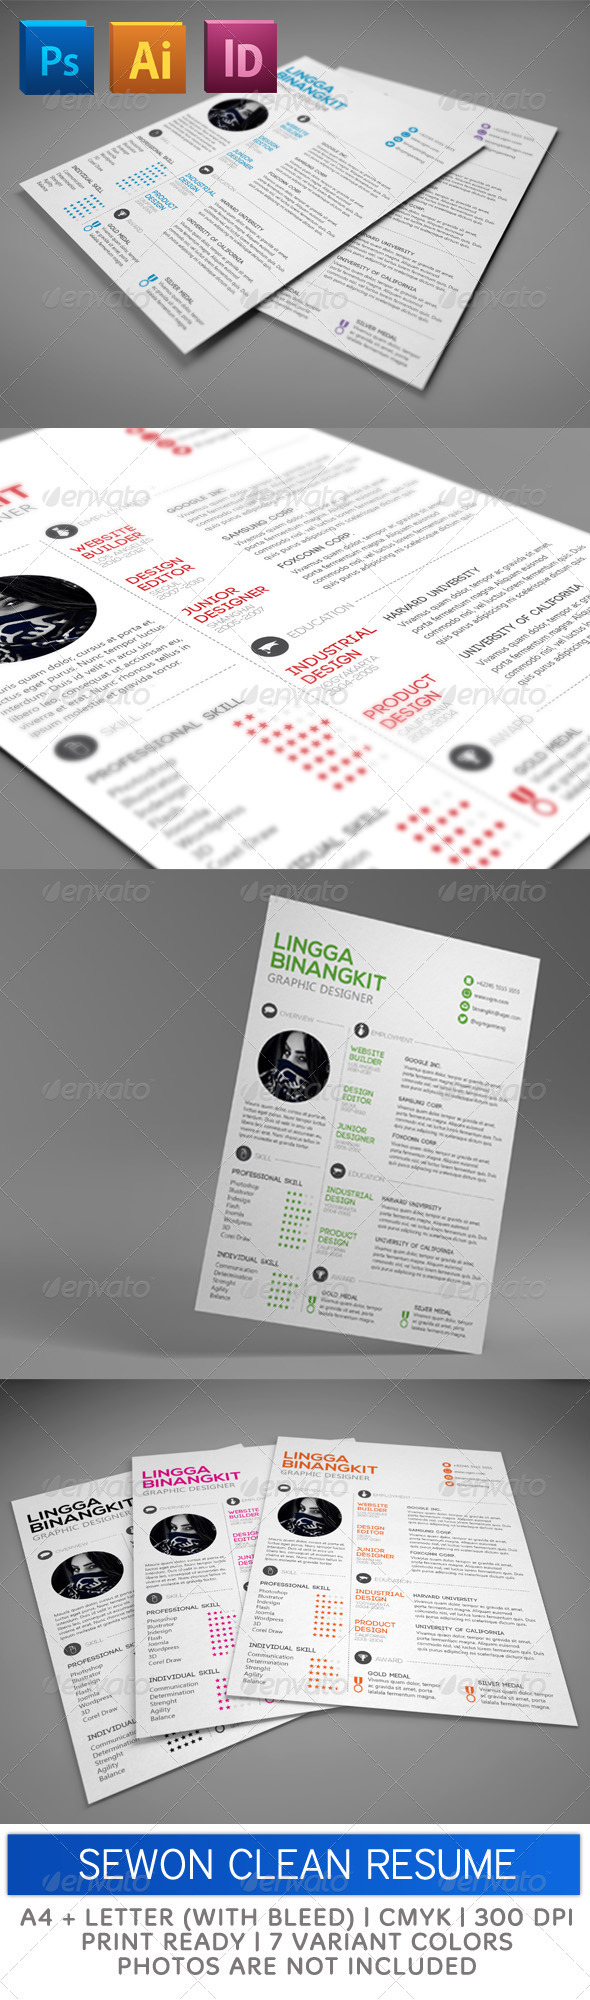 GraphicRiver Sewon Clean Resume Template 3647037